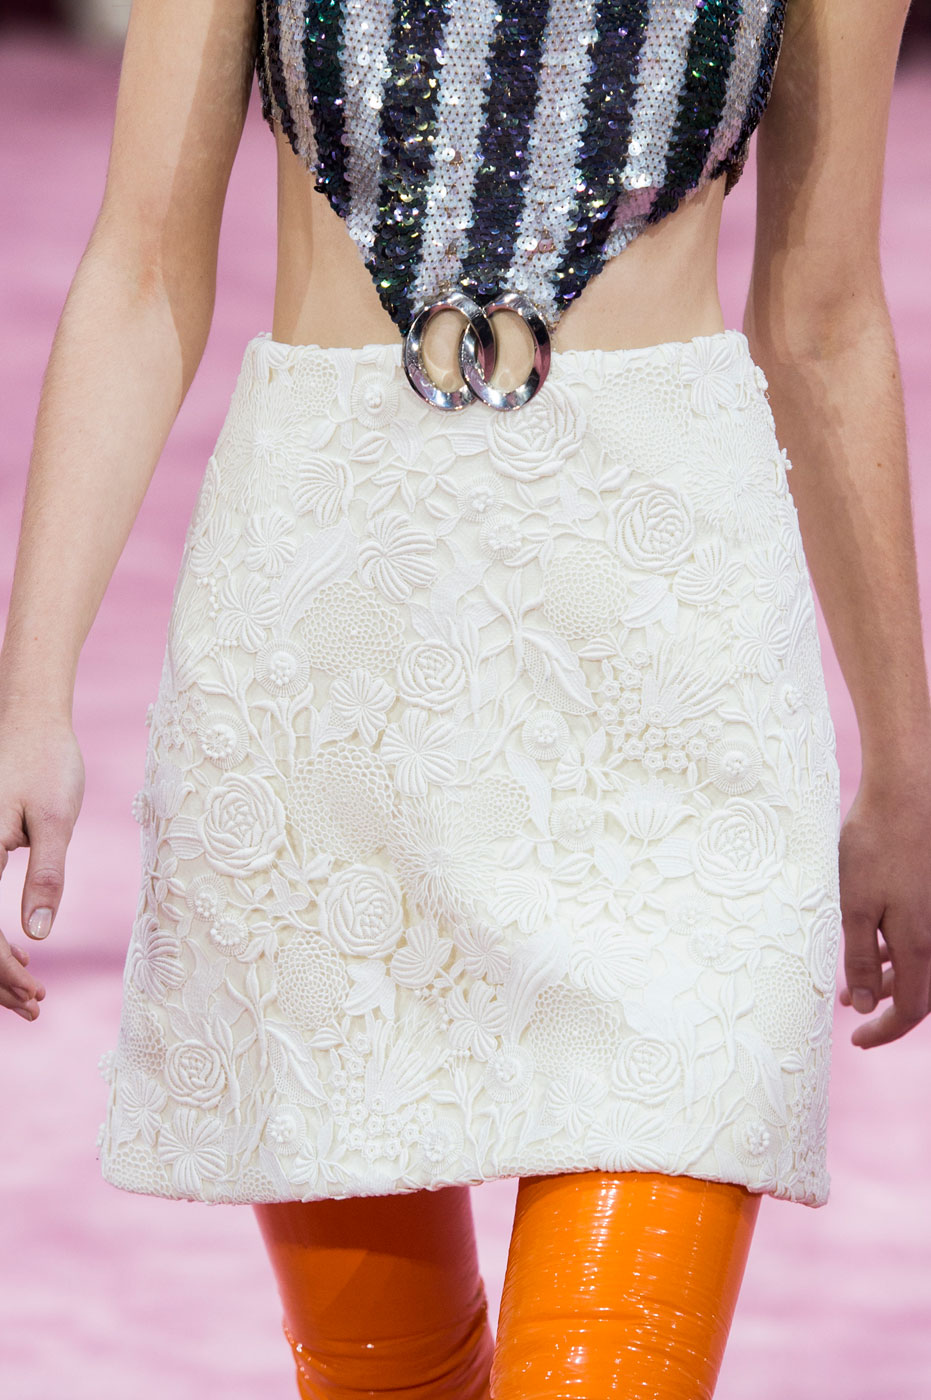 Christian-Dior-fashion-runway-show-close-ups-haute-couture-paris-spring-summer-2015-the-impression-193